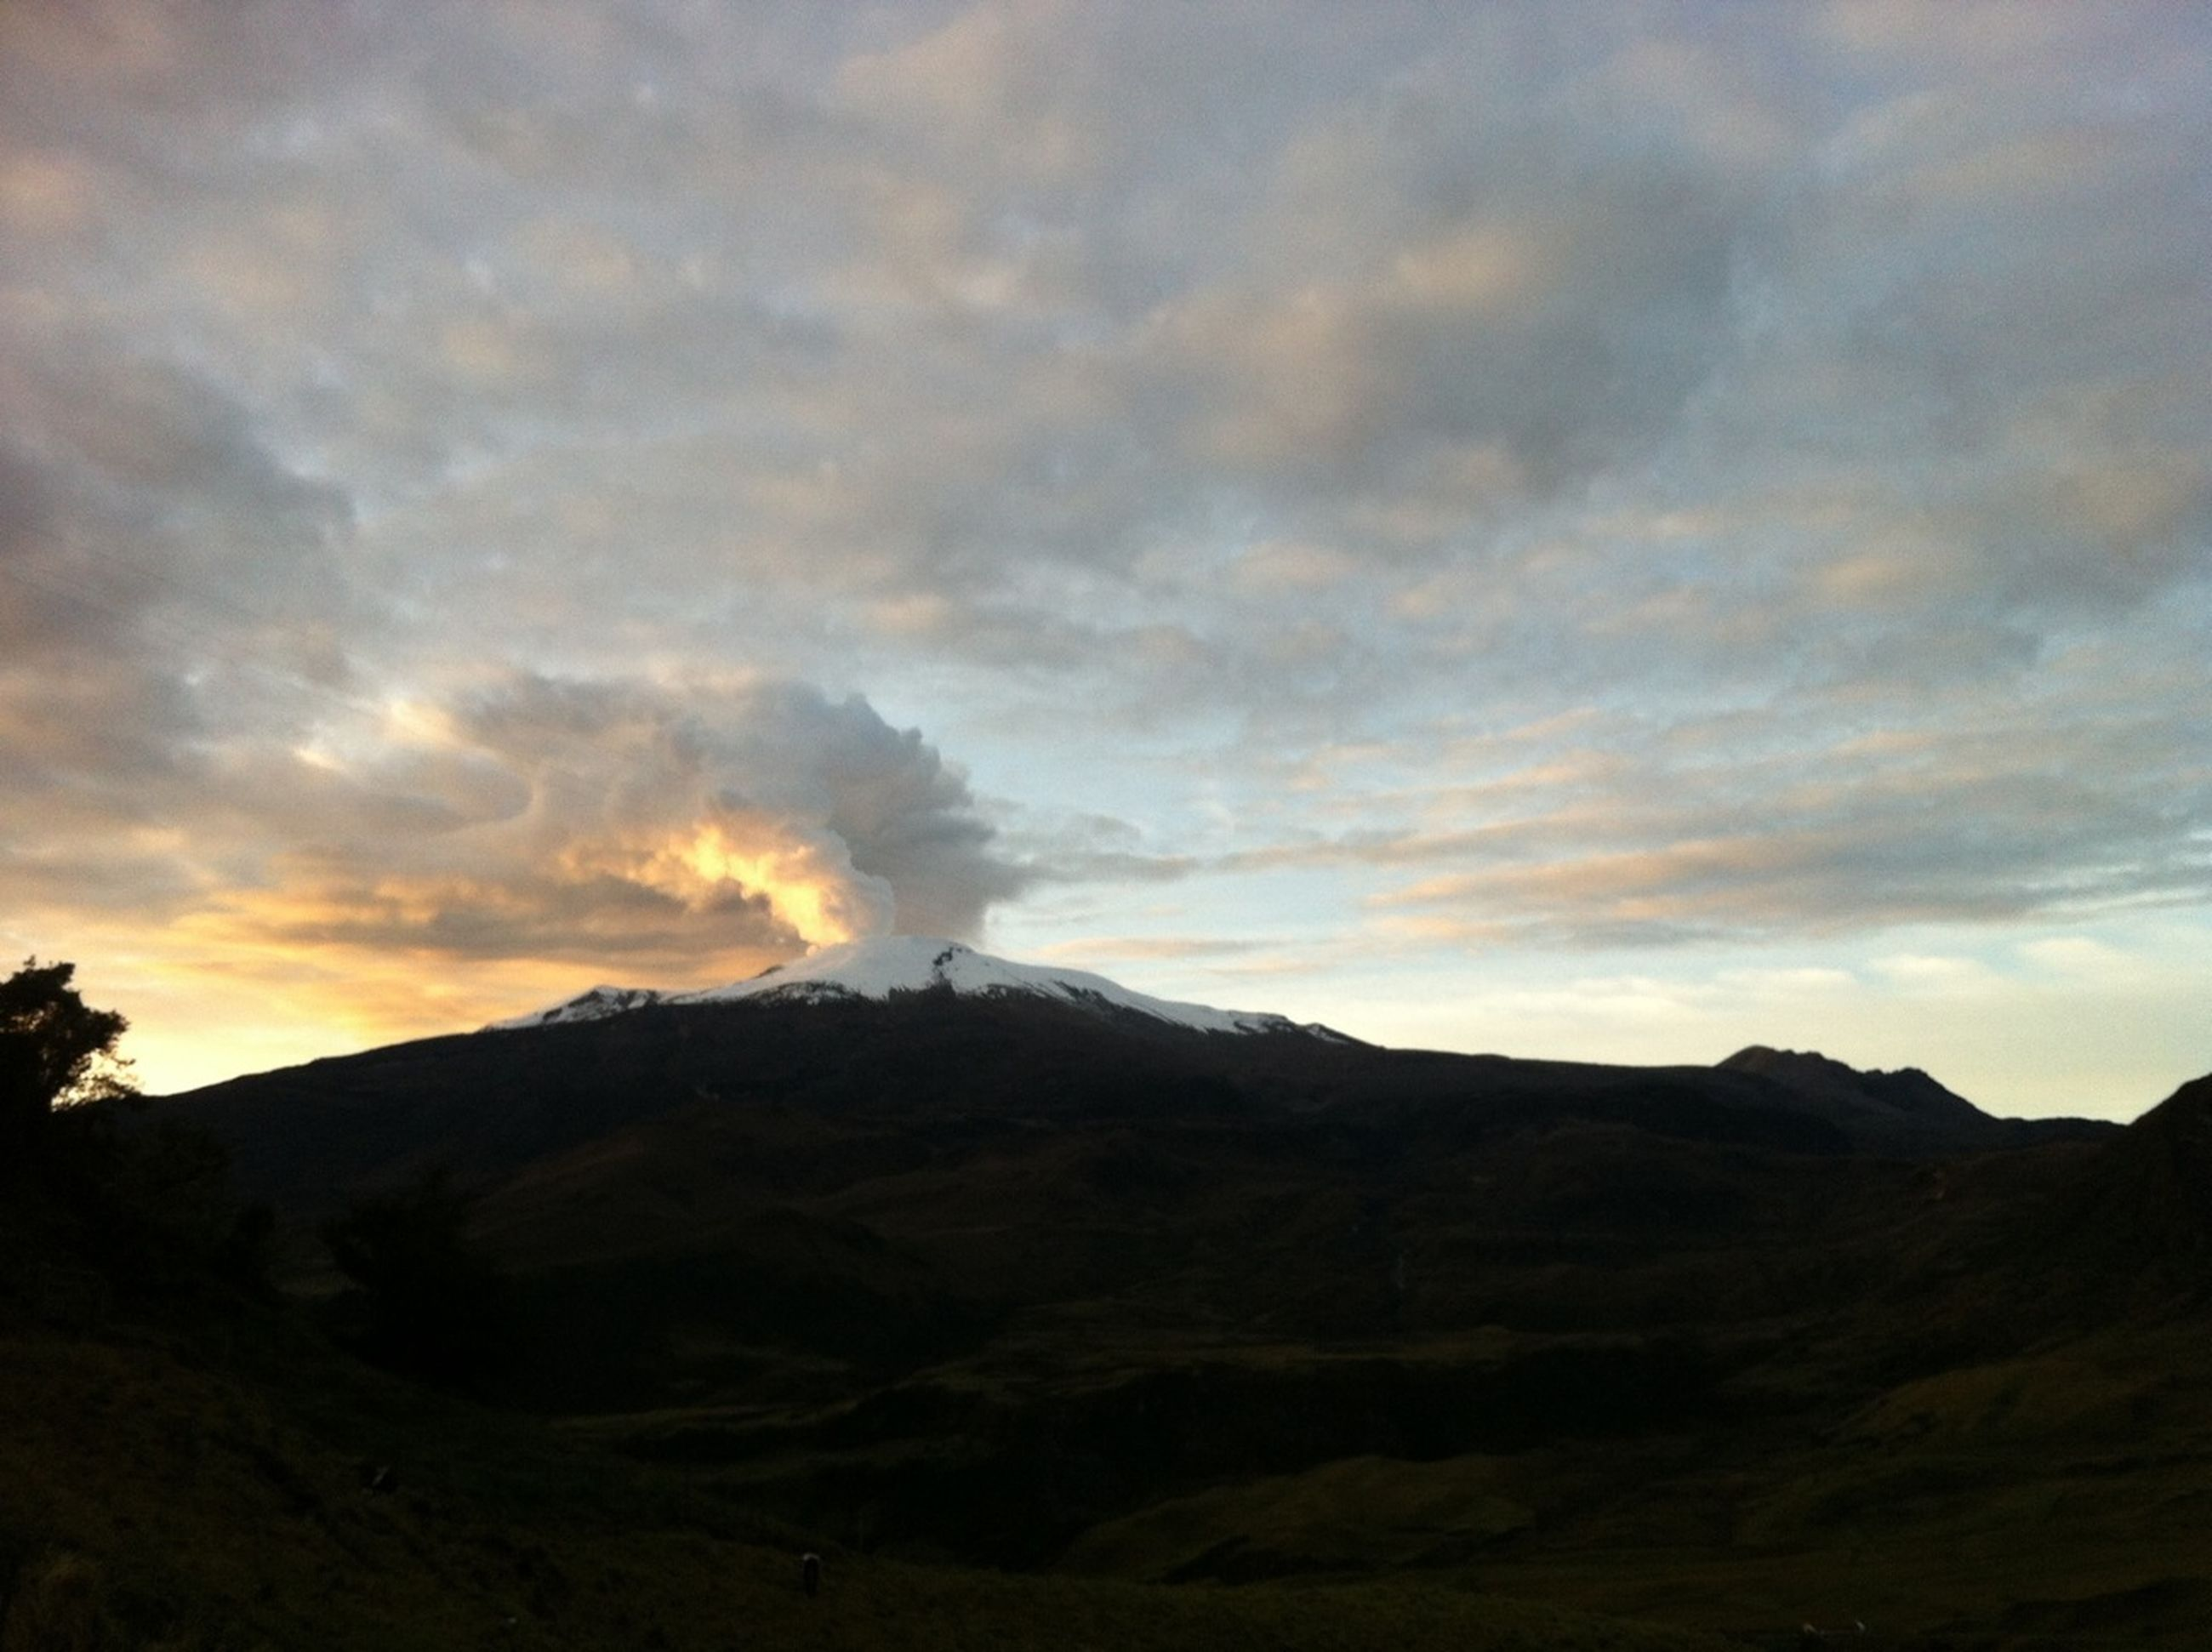 mountain, tranquil scene, sunset, sky, scenics, tranquility, silhouette, beauty in nature, landscape, cloud - sky, mountain range, nature, cloud, idyllic, non-urban scene, cloudy, physical geography, dusk, dramatic sky, remote